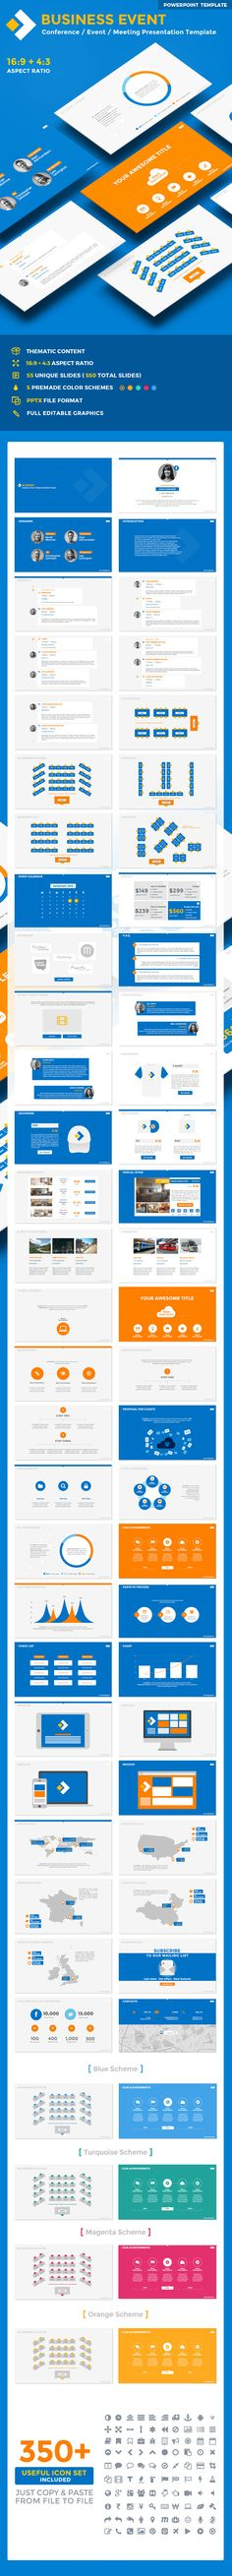 B Square Powerpoint Presentation Template Powerpoint - powerpoint presentation